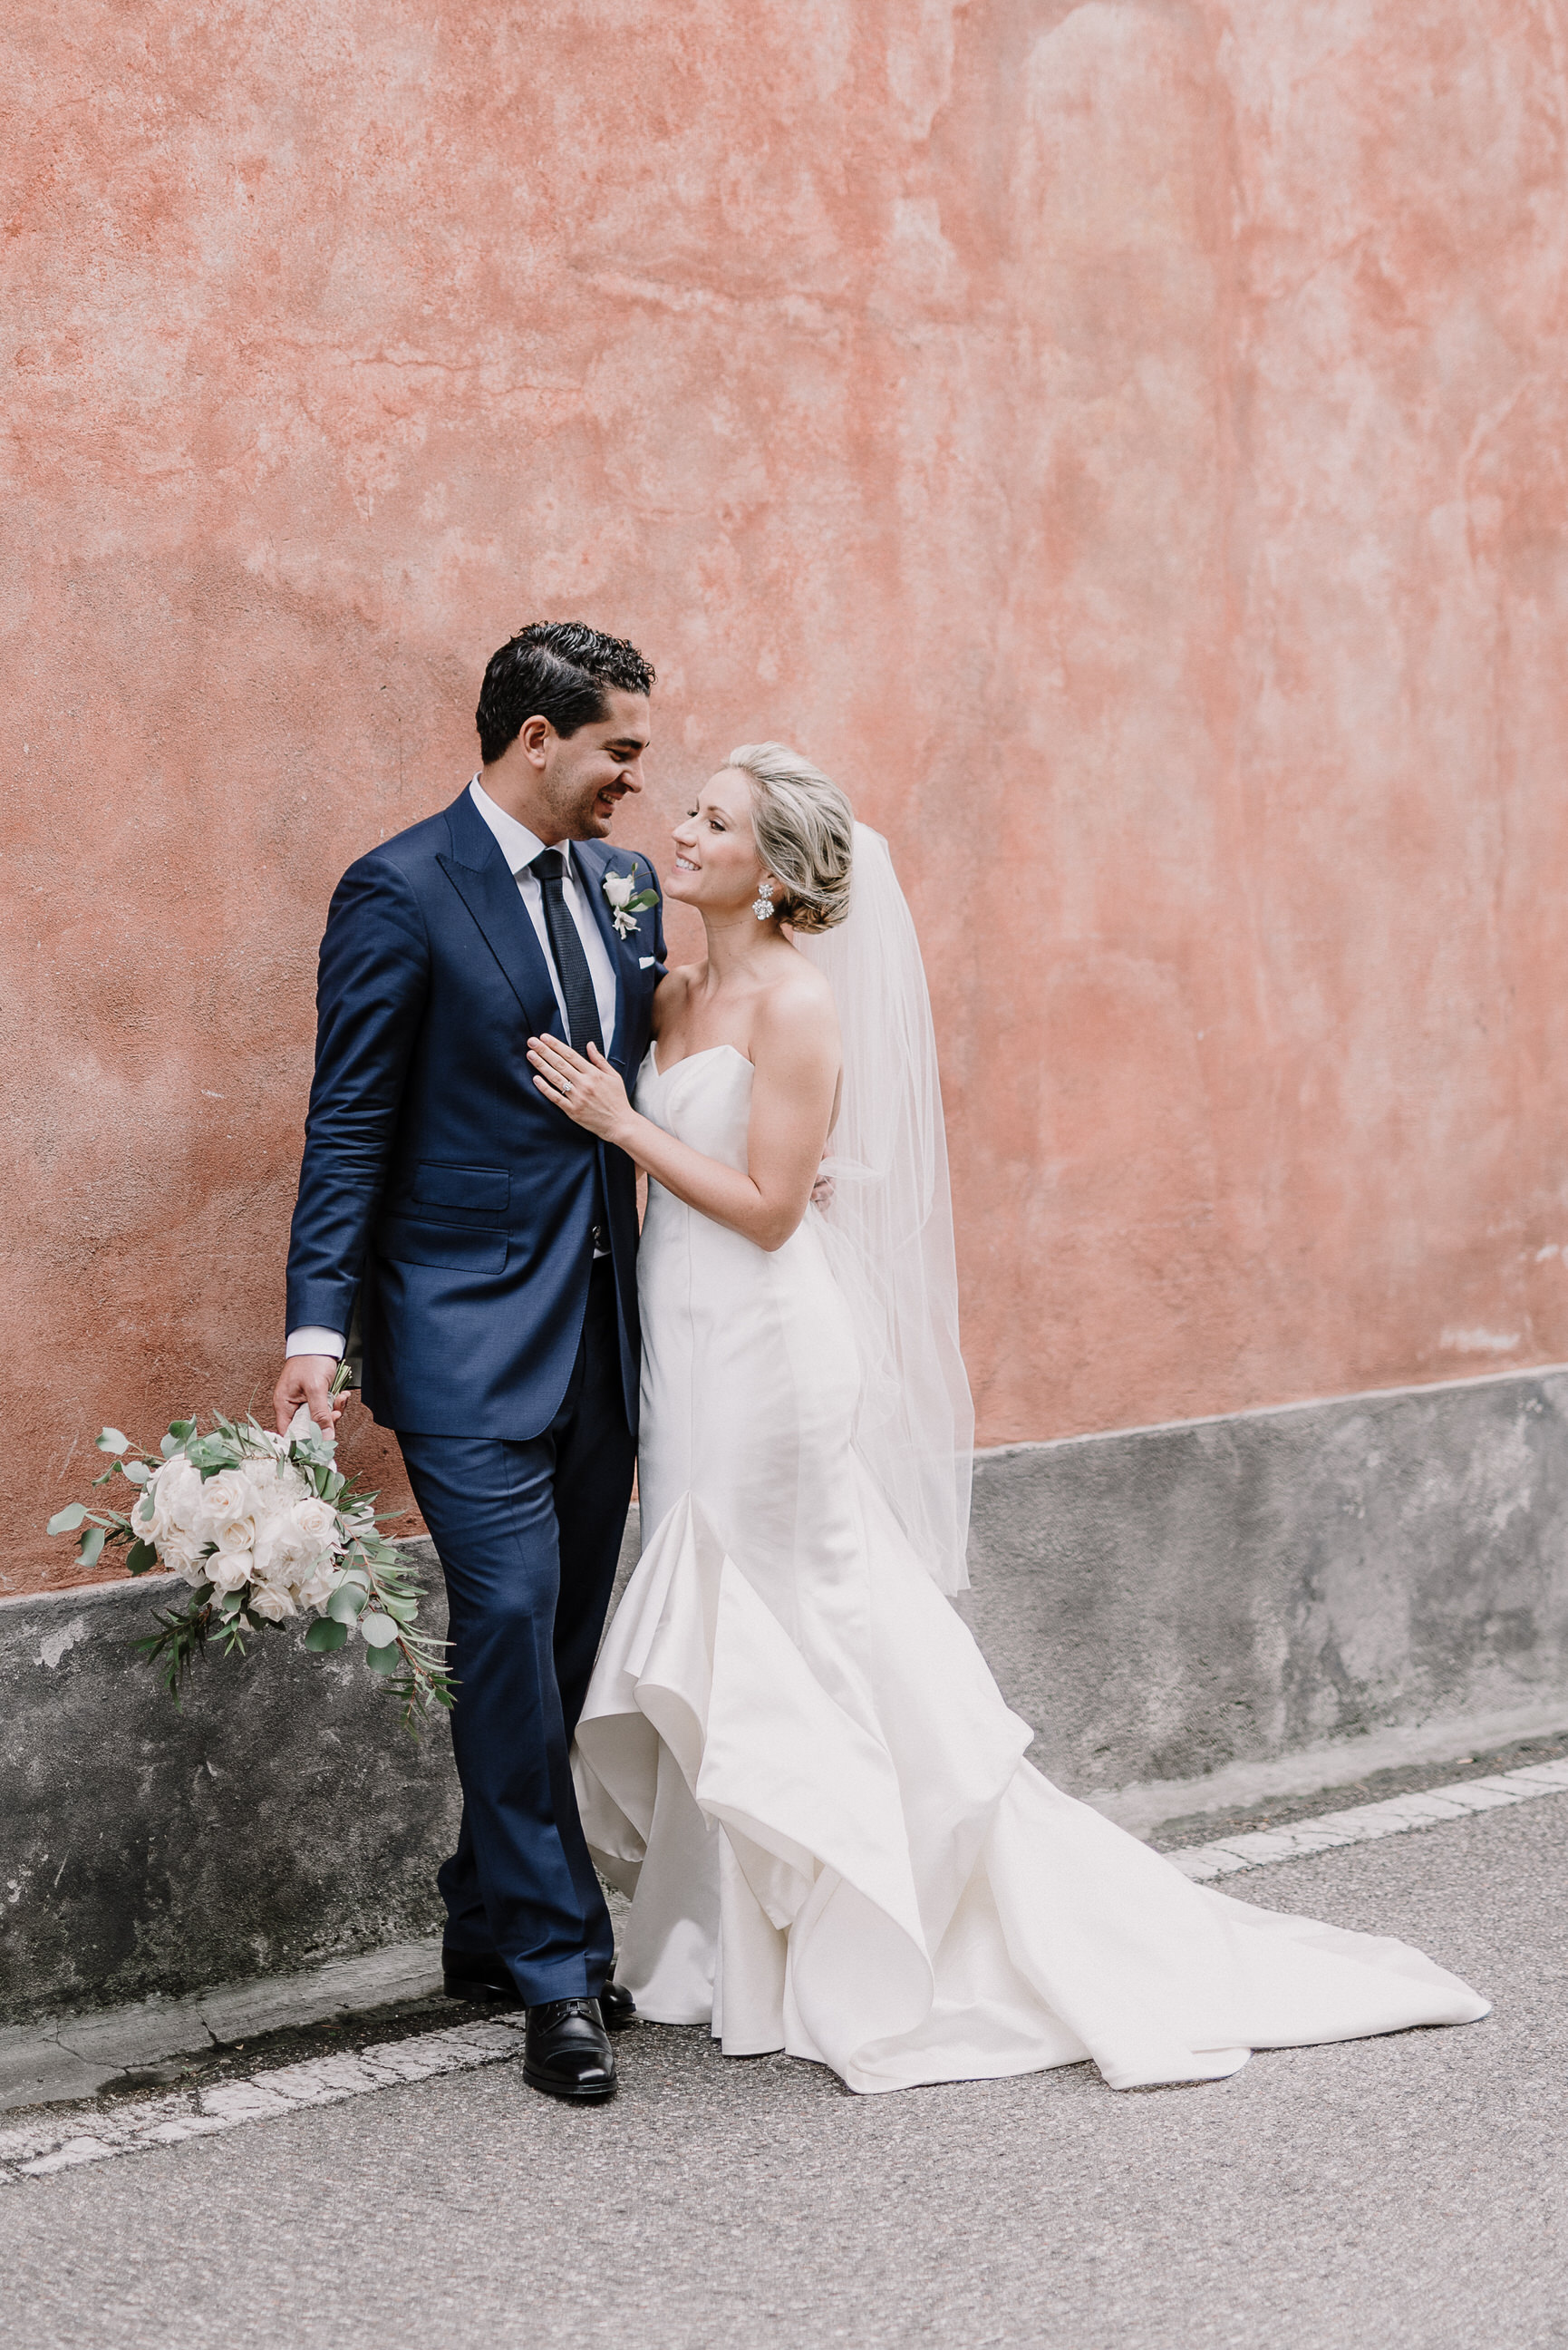 AJ Nicholas and Dali Belkhiria Wedding Day Album. (Credit: Gianluca and Mary Adovasio)